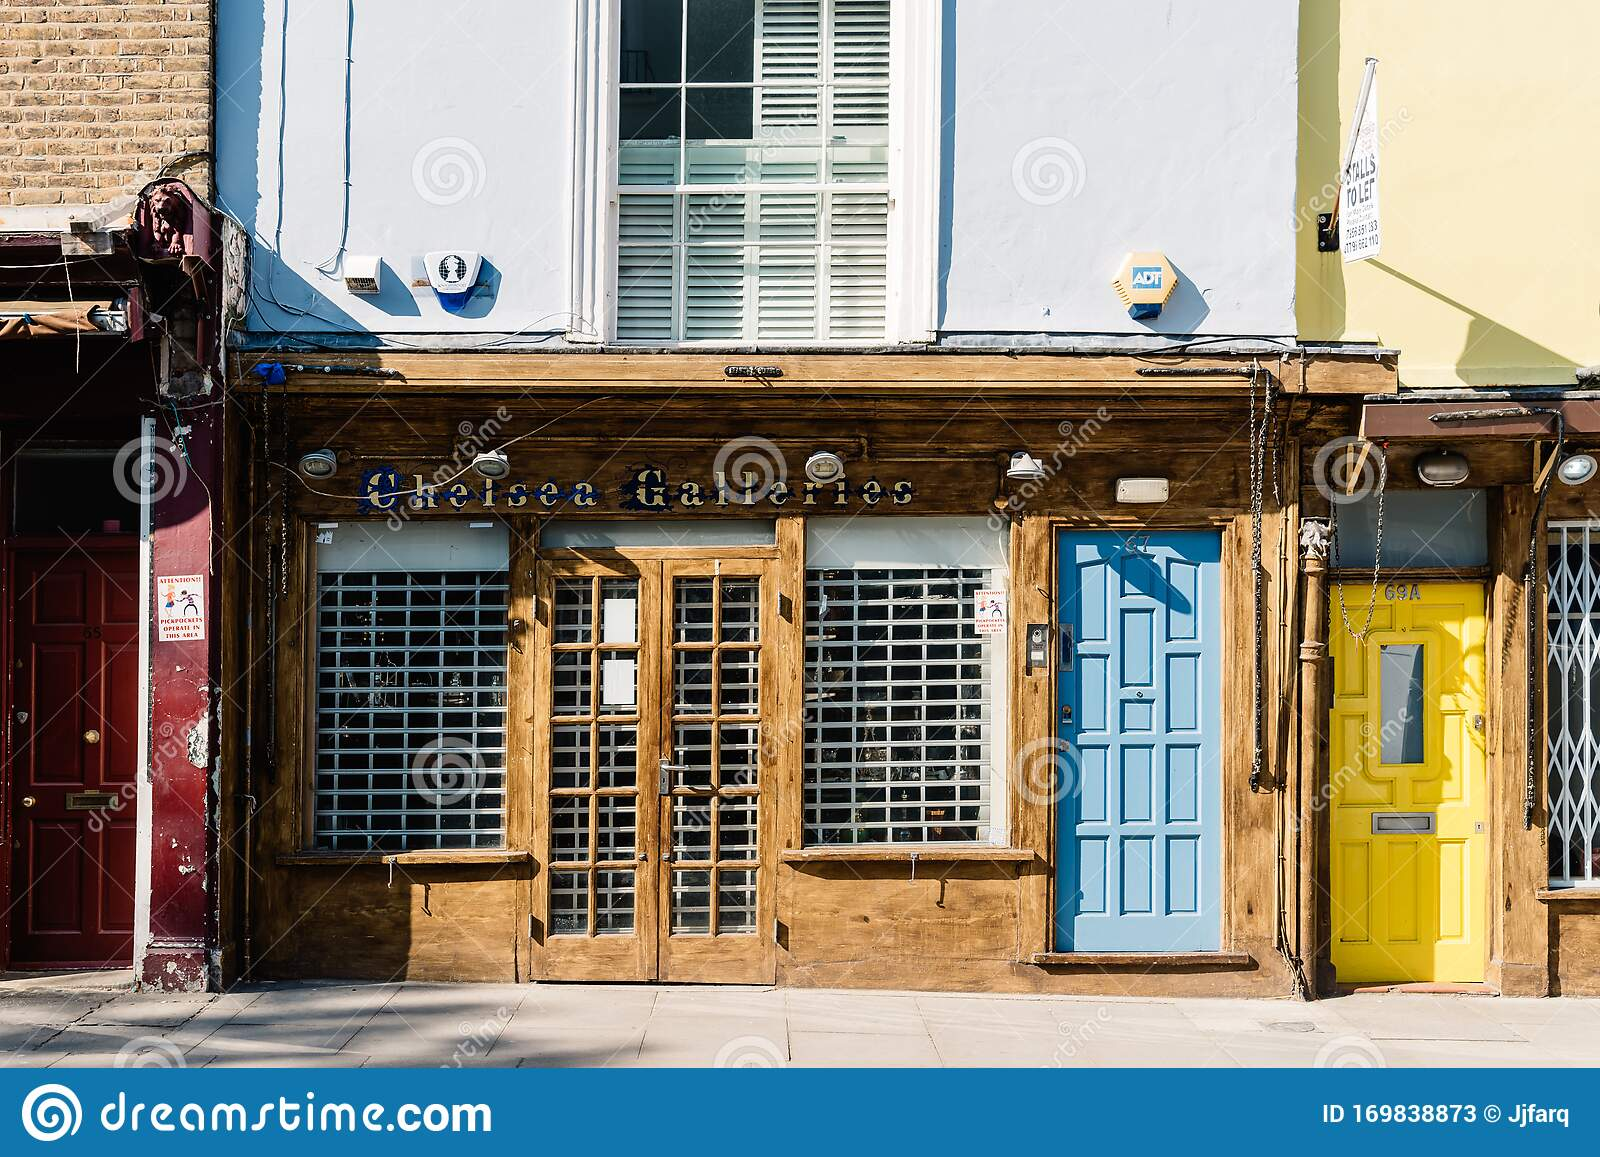 Chelsea Galleries Antiques Store In Portobello Road, Notting Hill, London  Editorial Stock Photo - Image of building, europe: 169838873